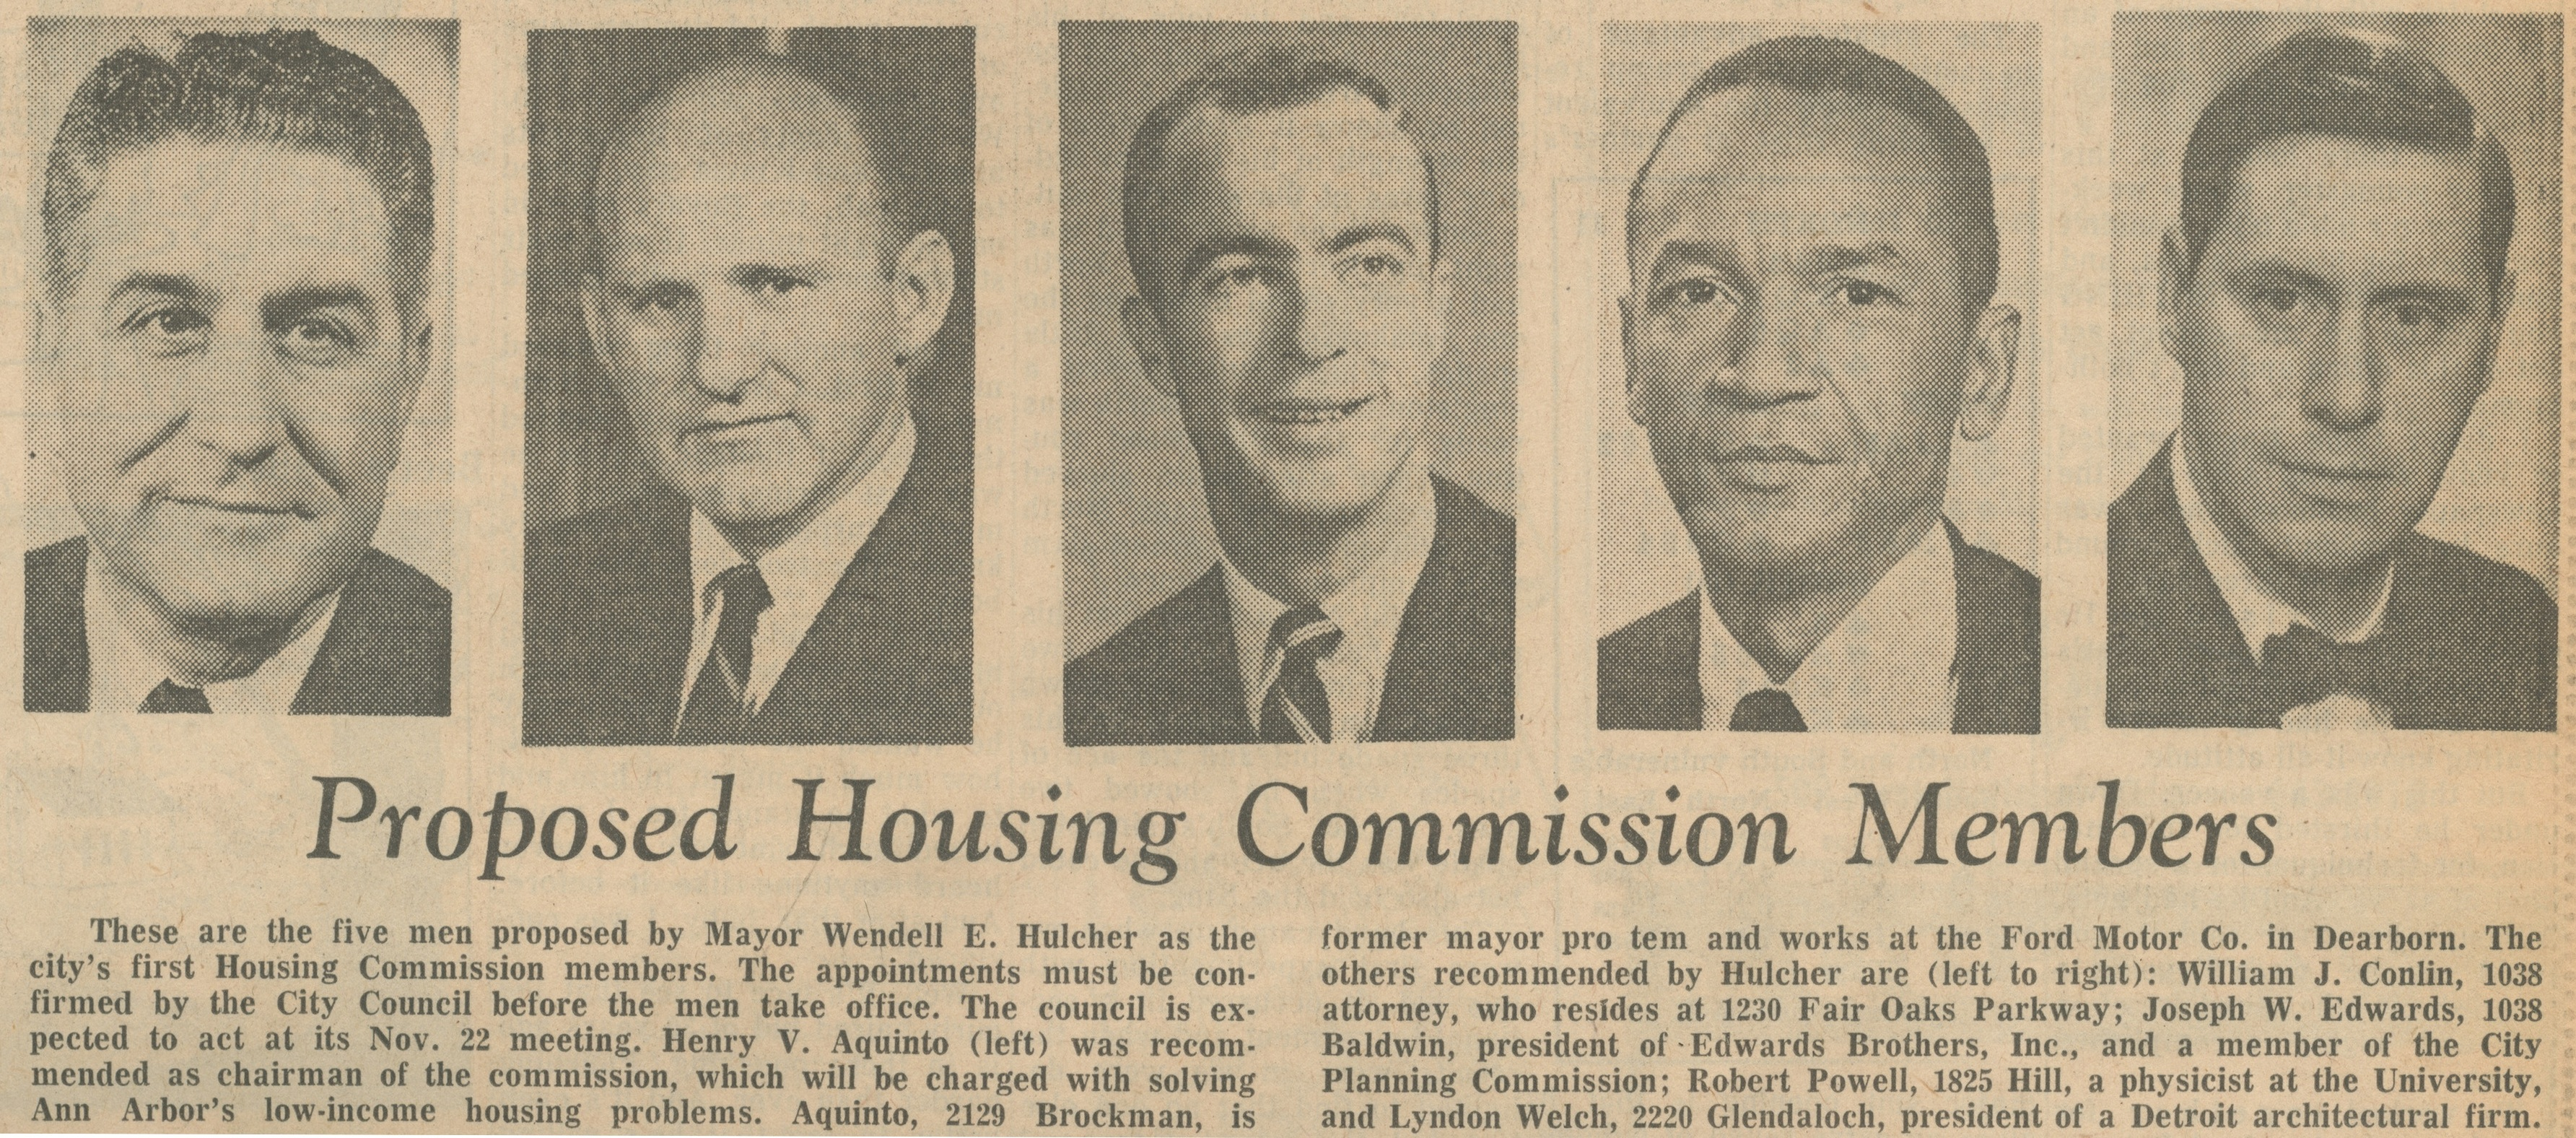 Proposed Housing Commission Members image